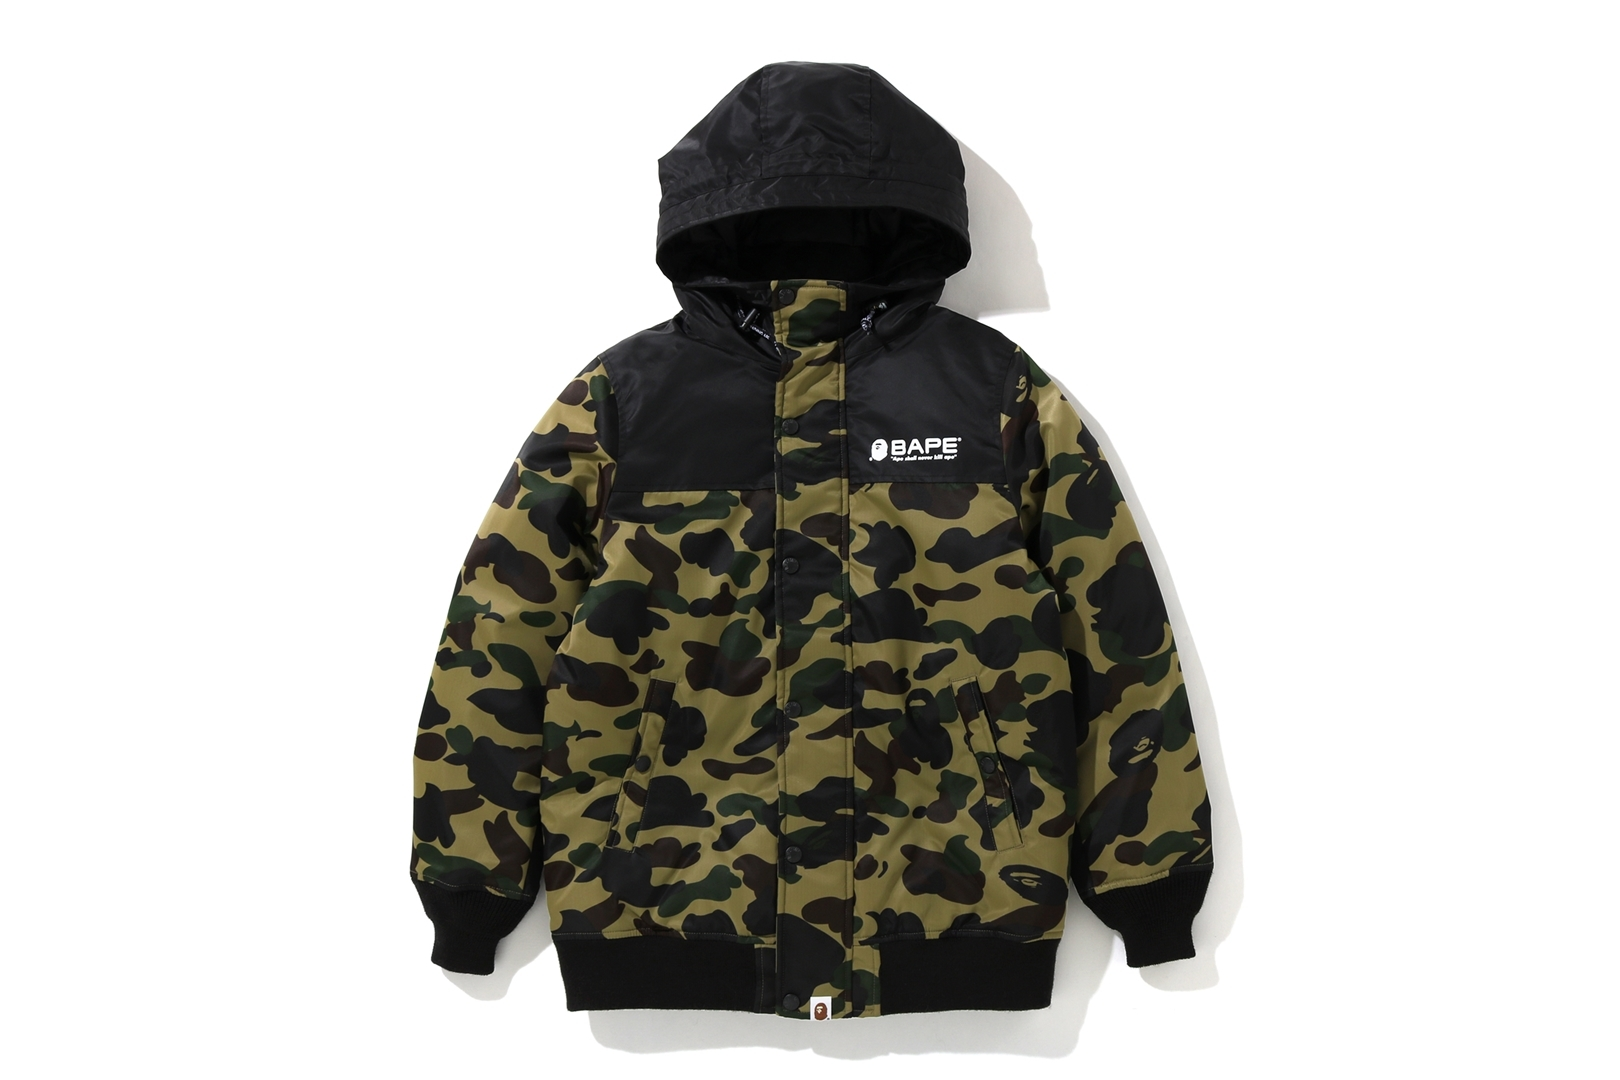 1ST CAMO OVERSIZED HOODIE DOWN JACKET_a0174495_13235995.jpg